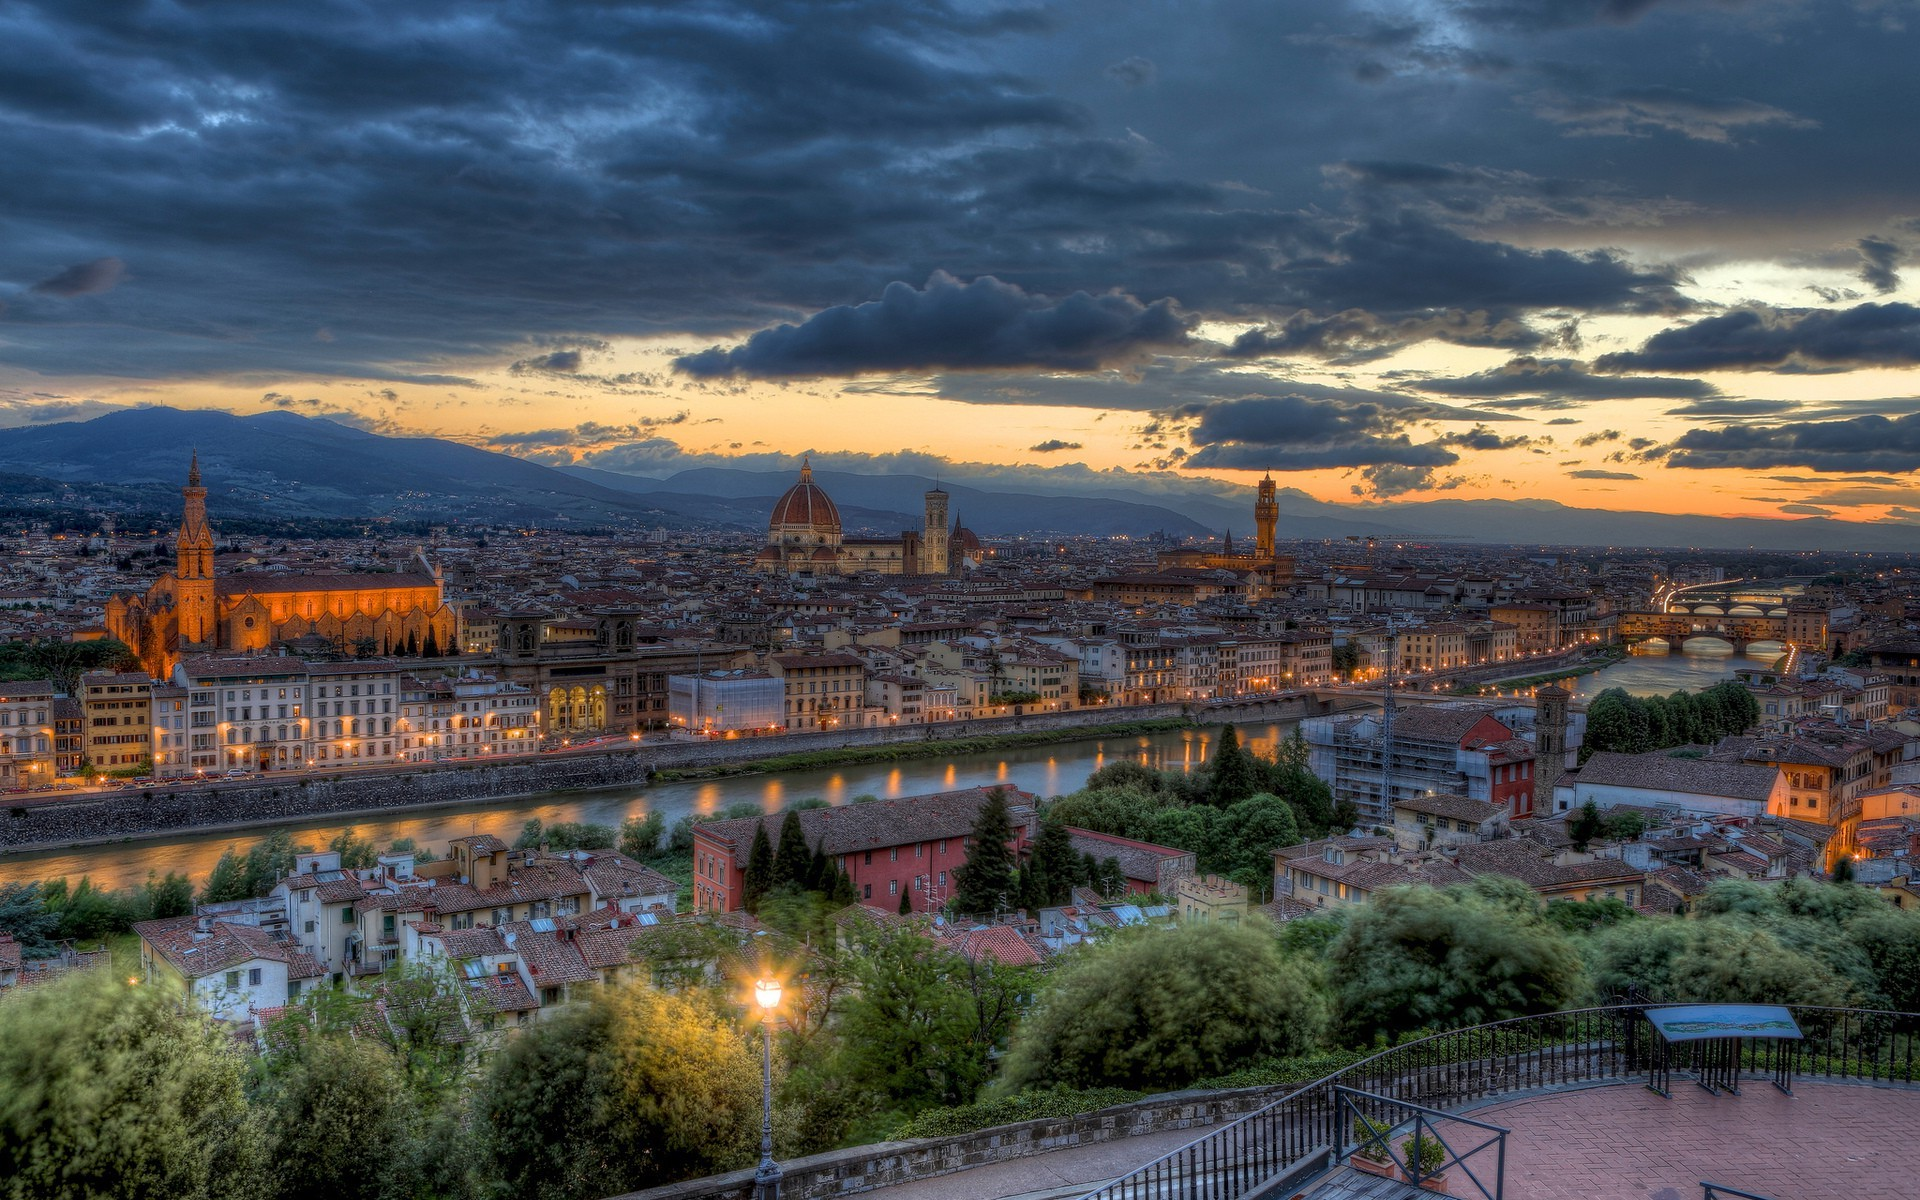 3d Wallpaper Hd For Home Wall City Cityscape River Bridge Florence Italy Sunset